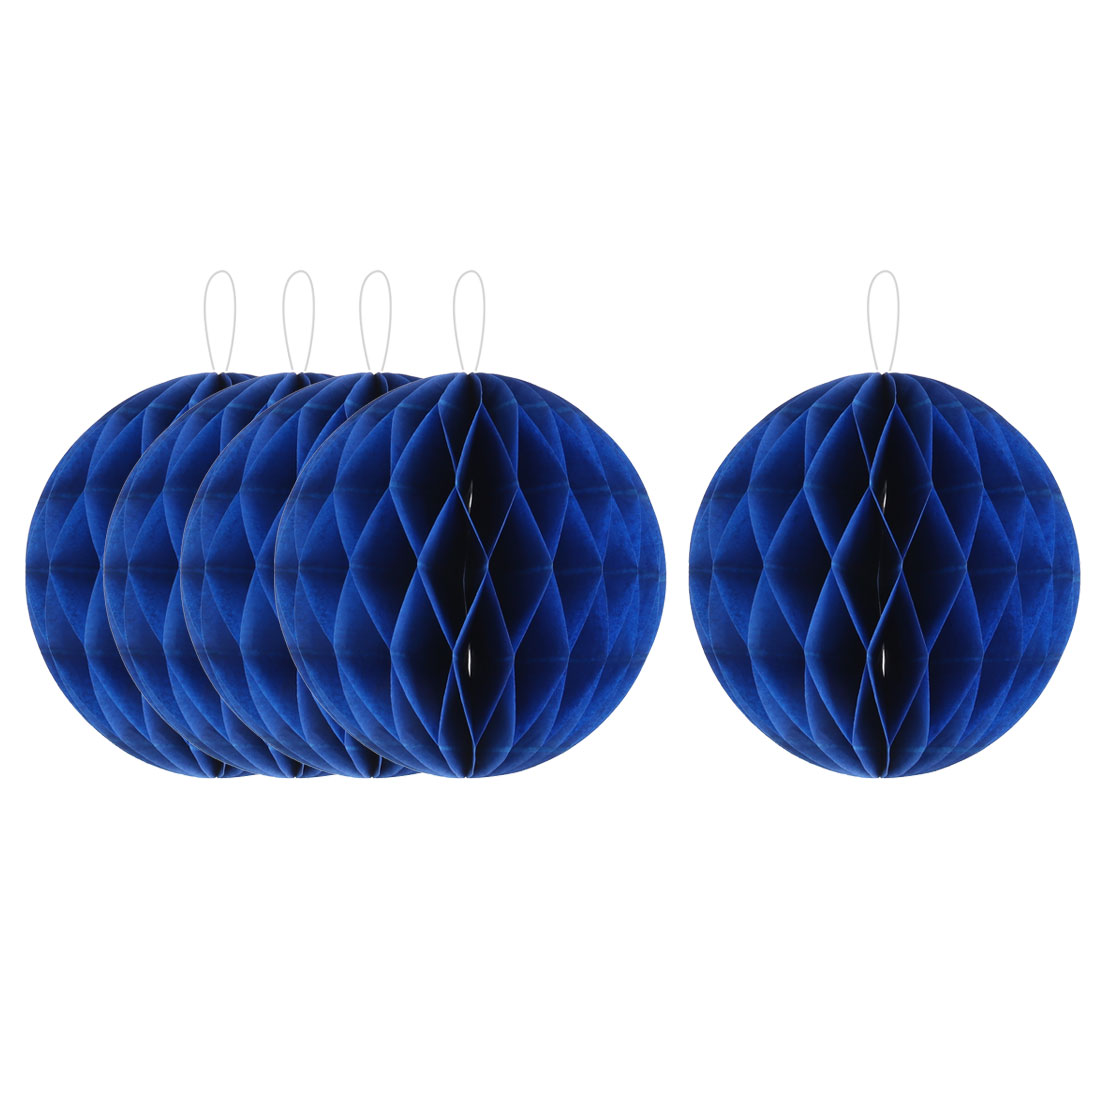 Household Party Paper Wall Window Door DIY Decoration Honeycomb Ball Royal Blue 4 Inch Dia 5 Pcs